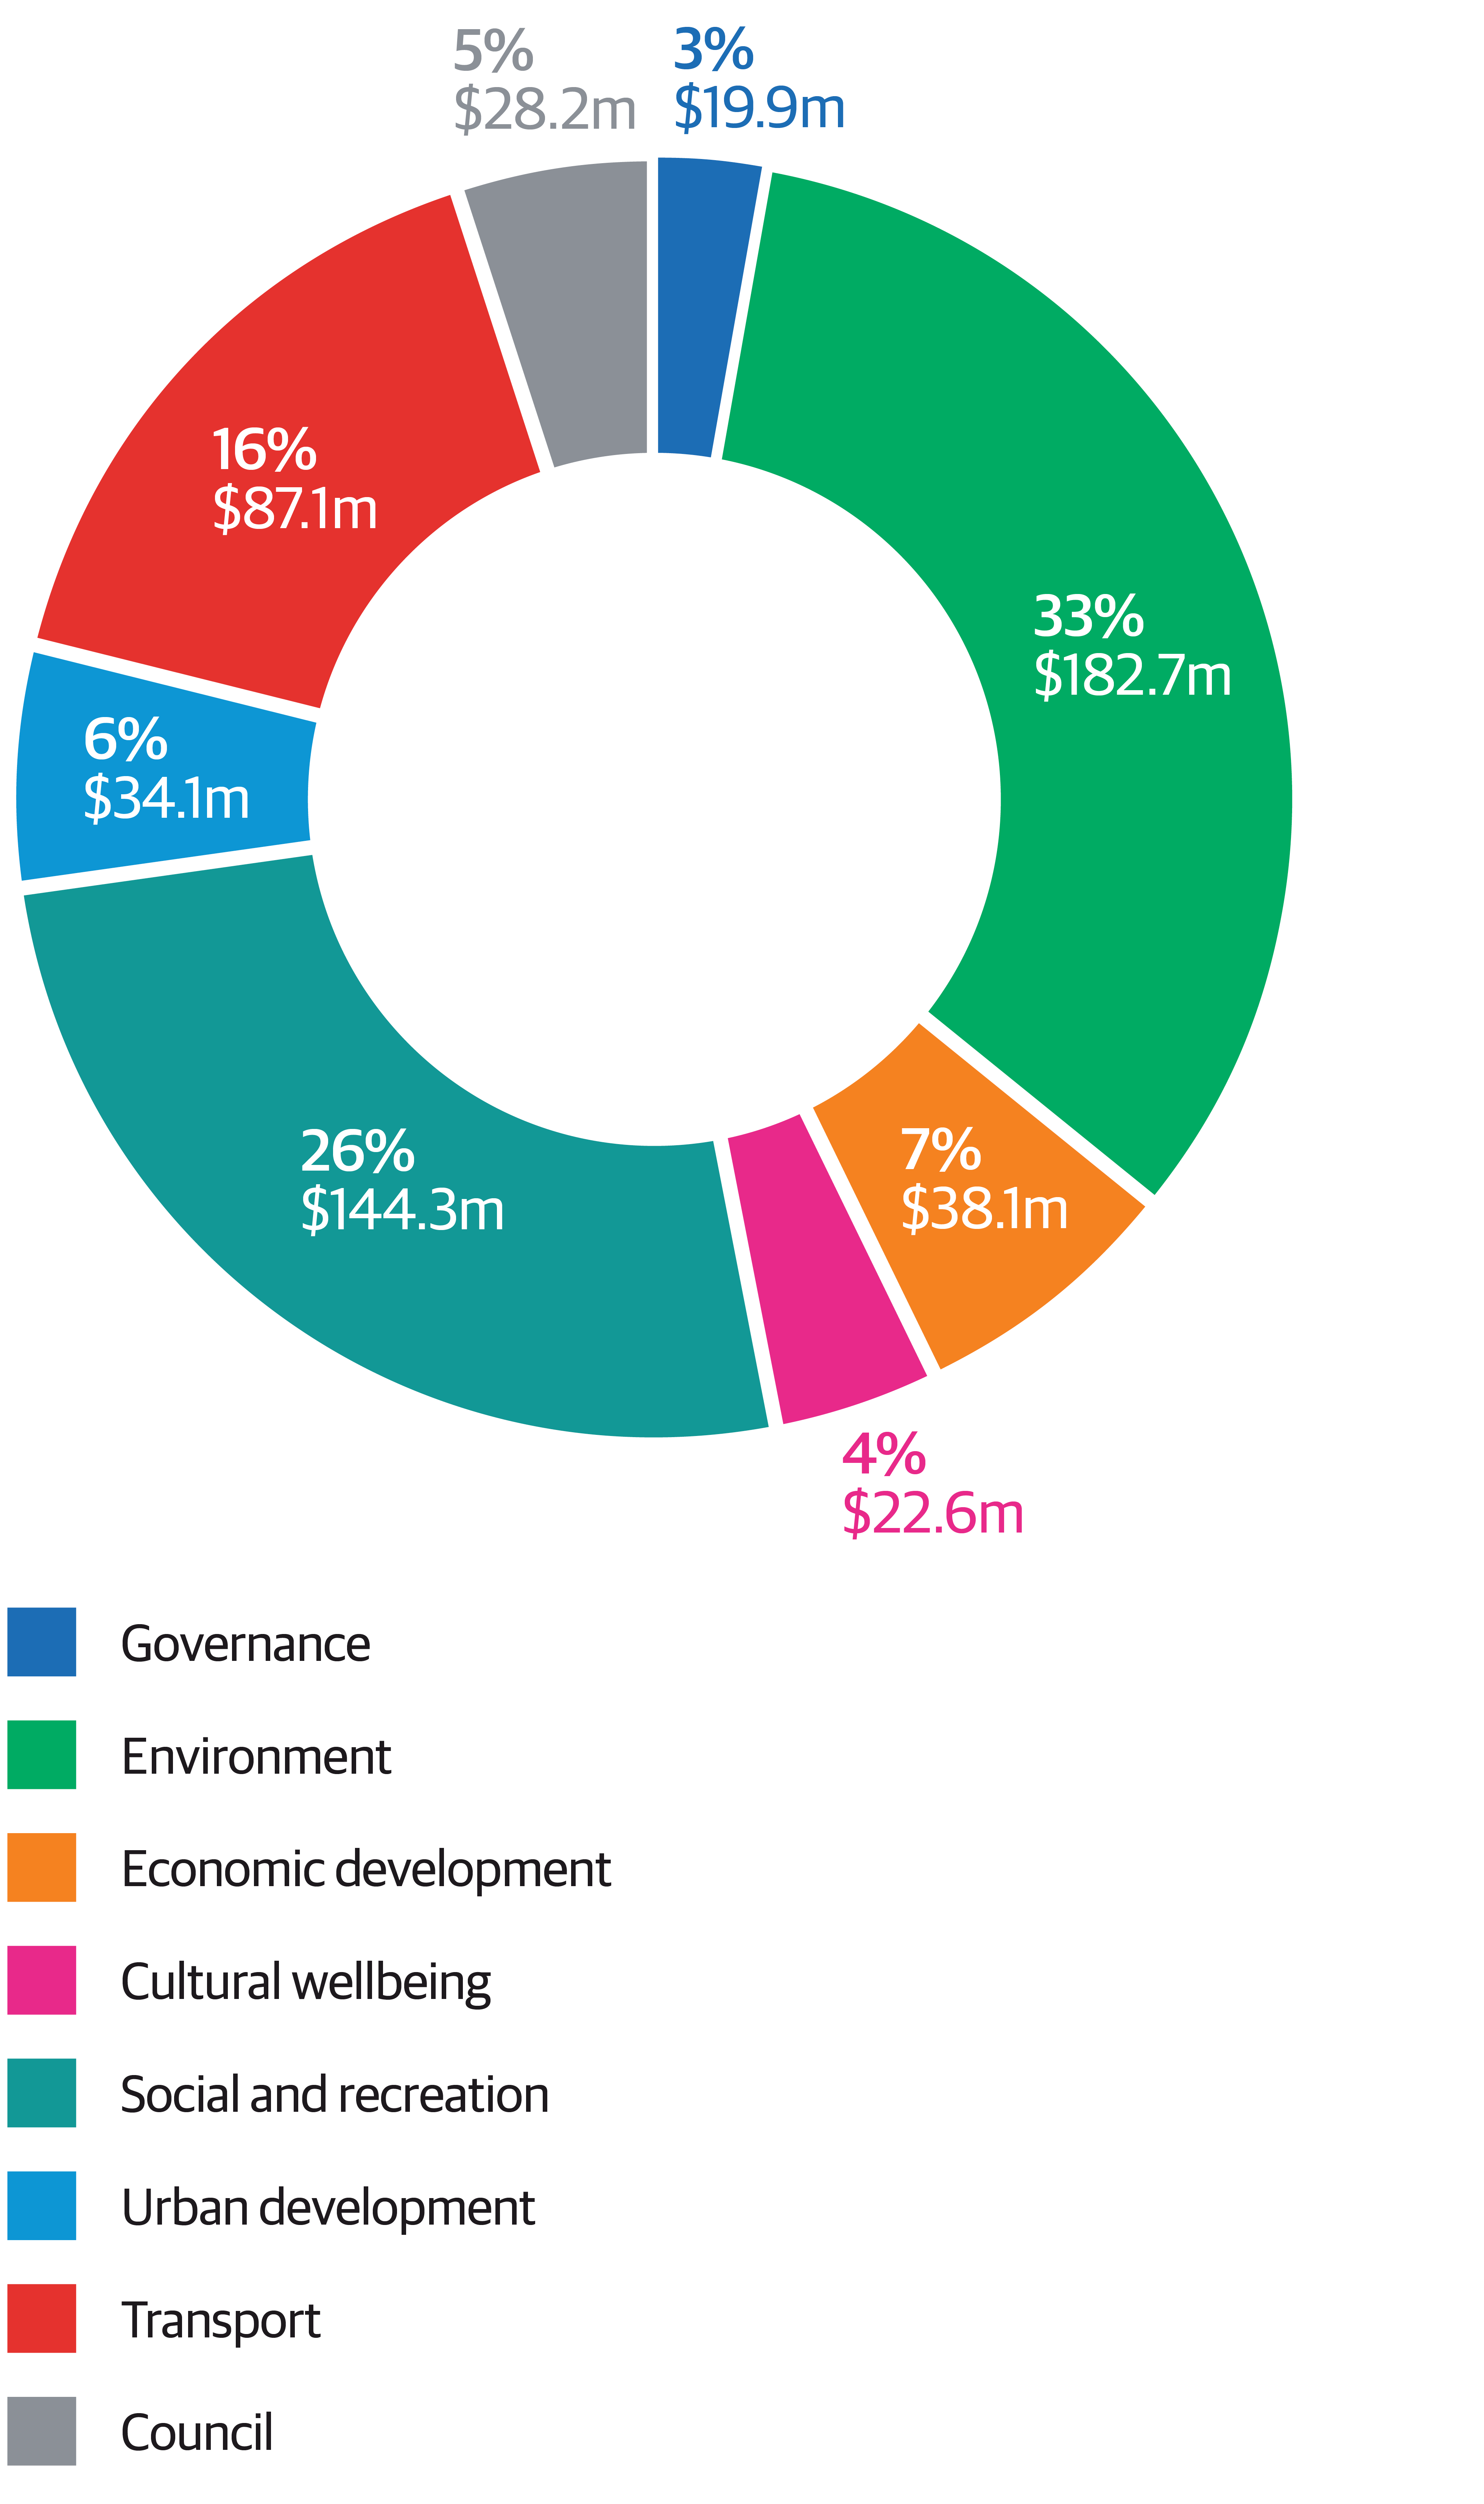 The graph illustrates the proportion of planned operational expenditure, excluding revenue, in each of our strategic activity areas. The biggest area of operational expenditure is Environment at 33 percent of the total gross opex of $557 million. Social and Recreation and Transport follow at 26 percent and 16 percent respectively. Economic Development, Urban Development, Council organisational projects, Arts and Culture, and Governance follow each with less than 10 percent of total operational expenditure.